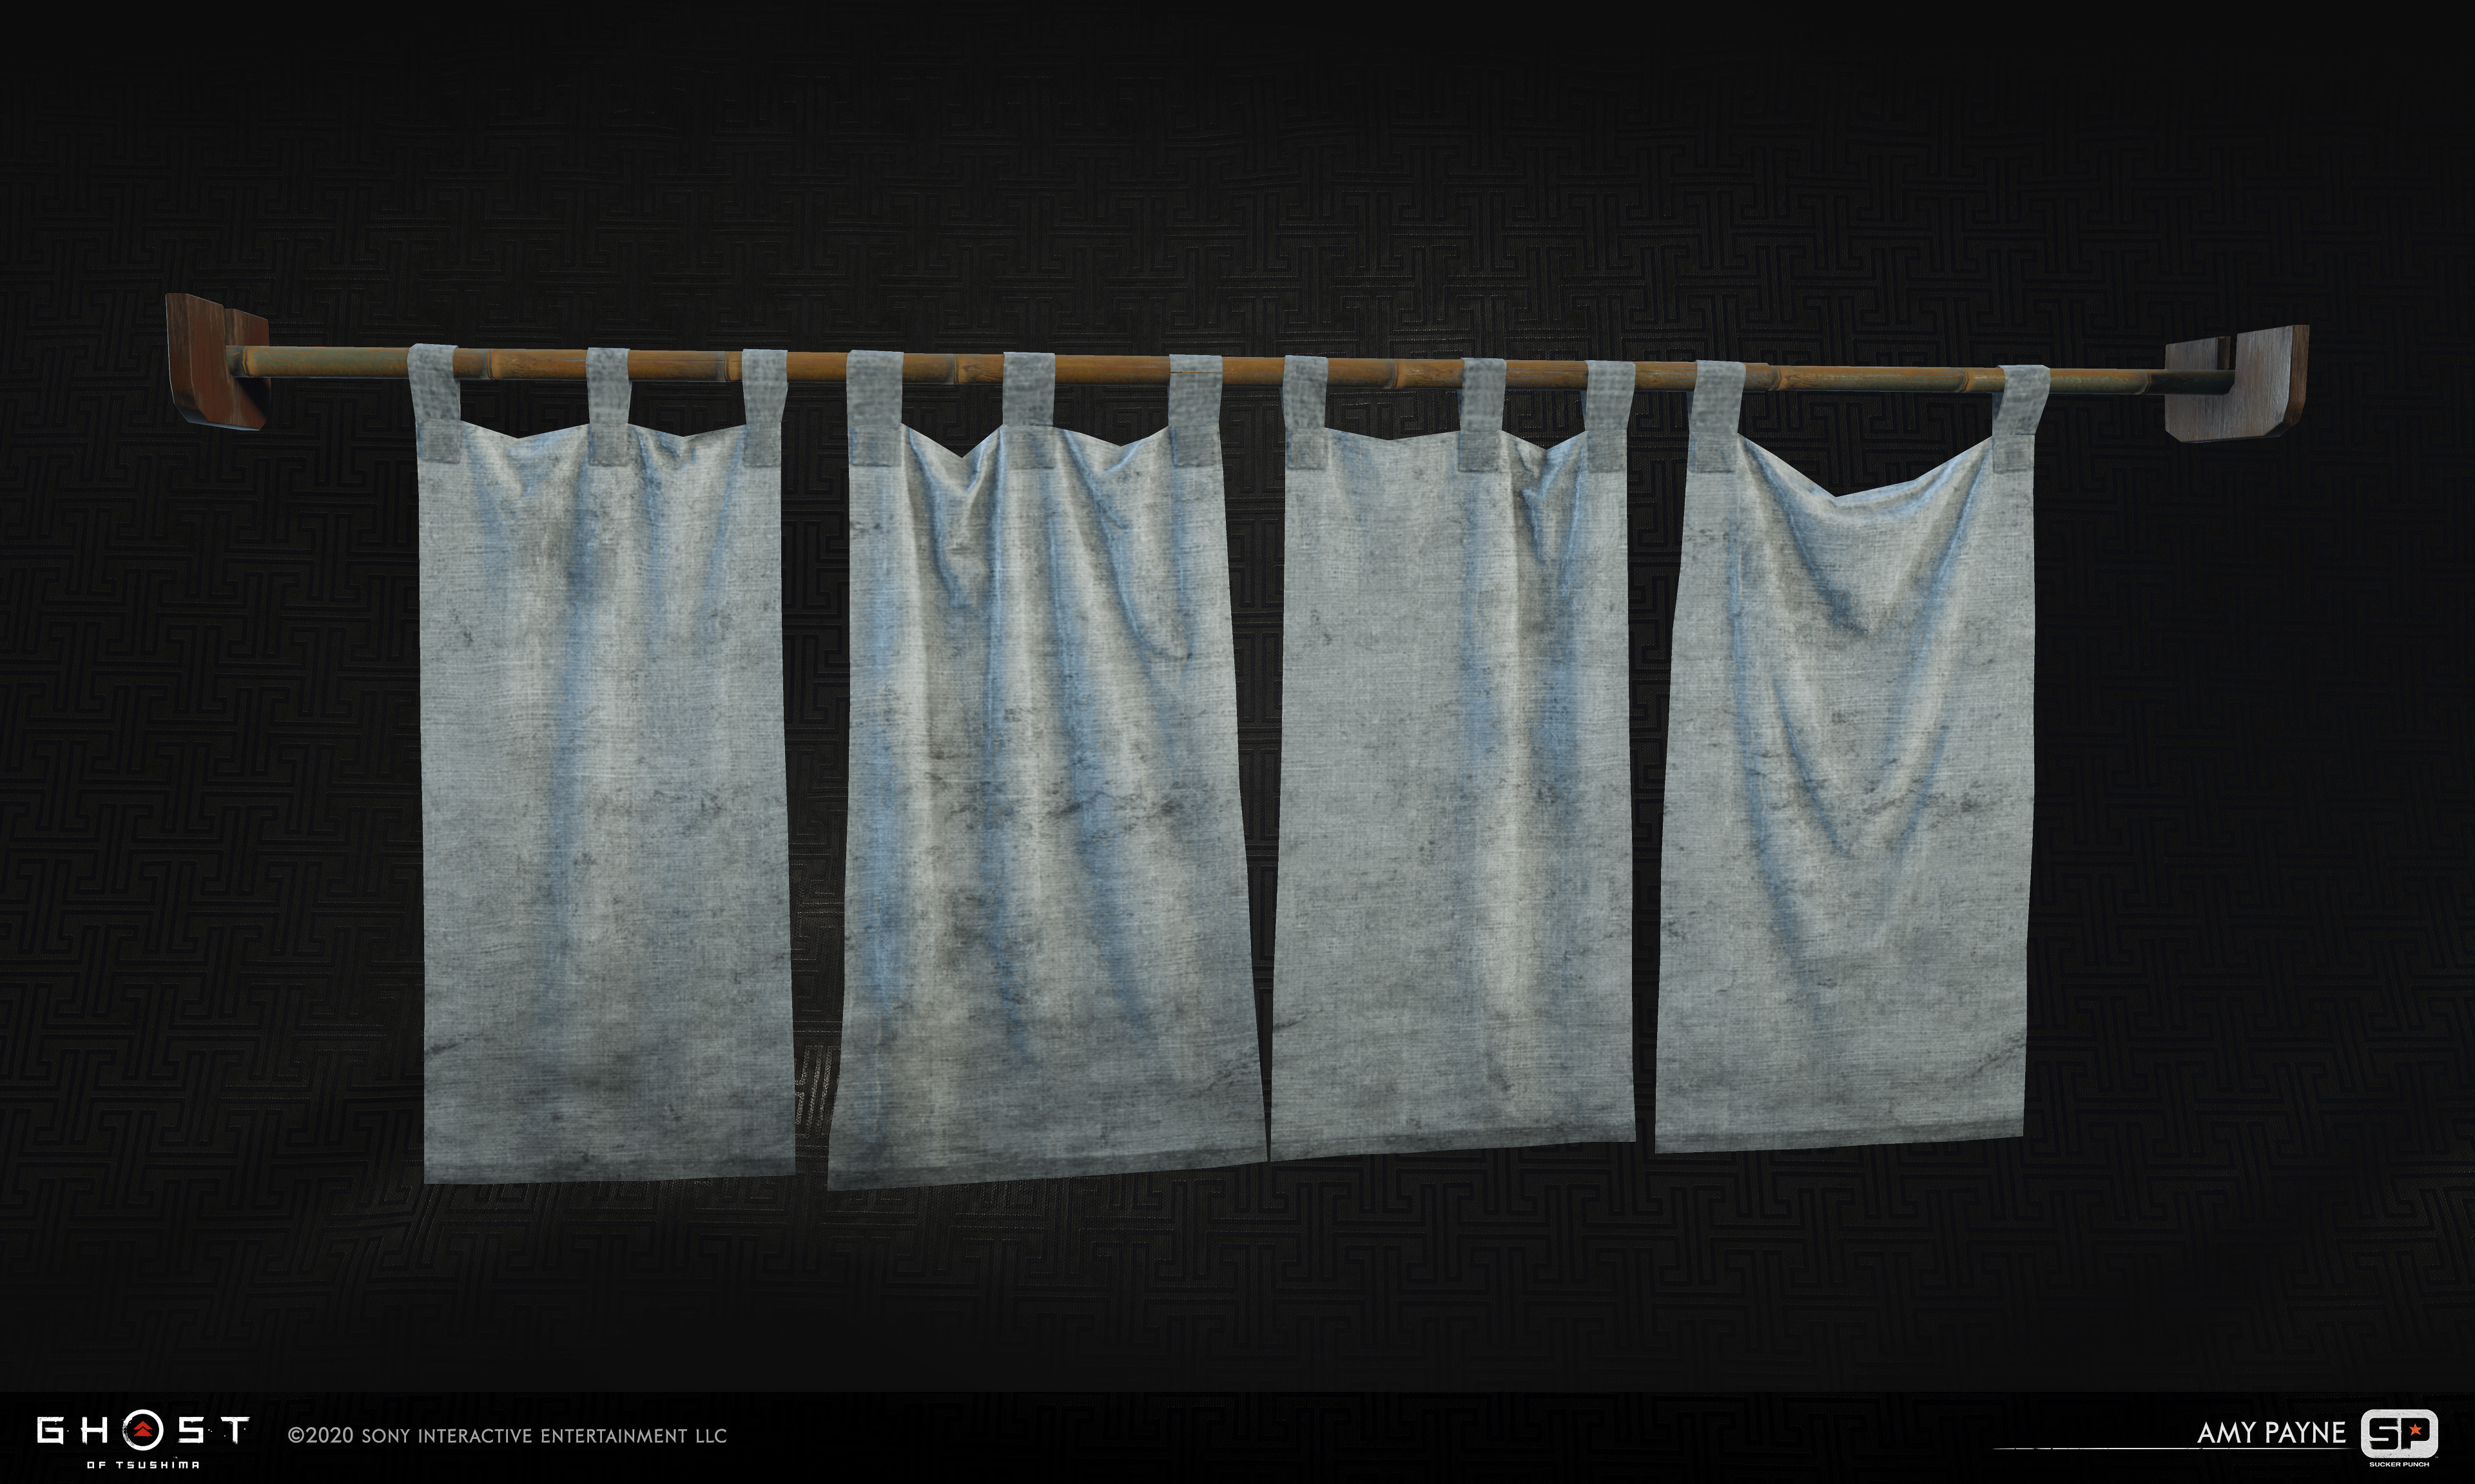 Shop entrance banners. Responsible for high poly cloth sim, texture creation, and in game cloth sim.